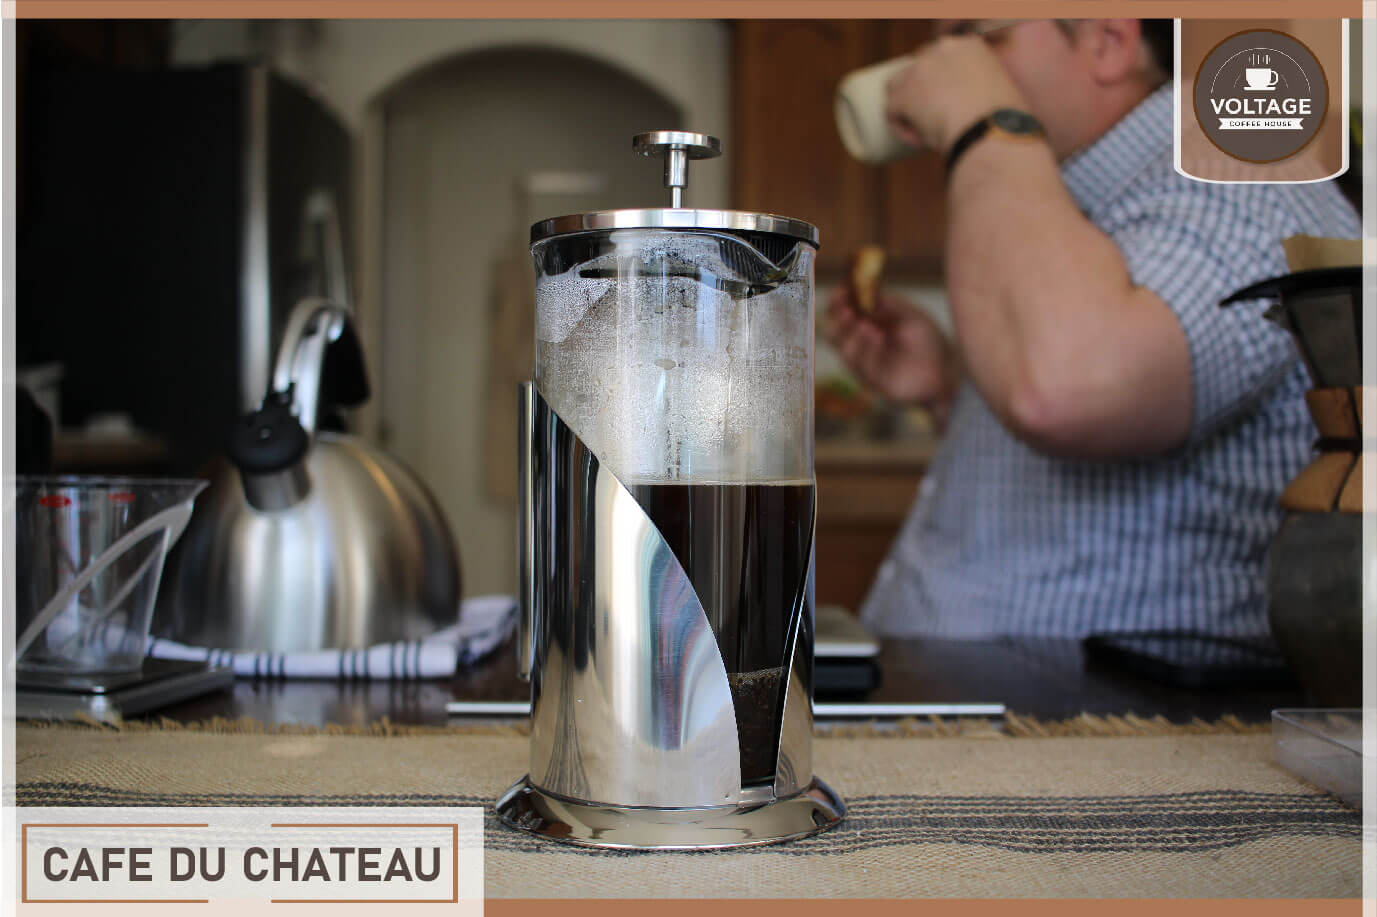 Cafe du Chateau french press maker review